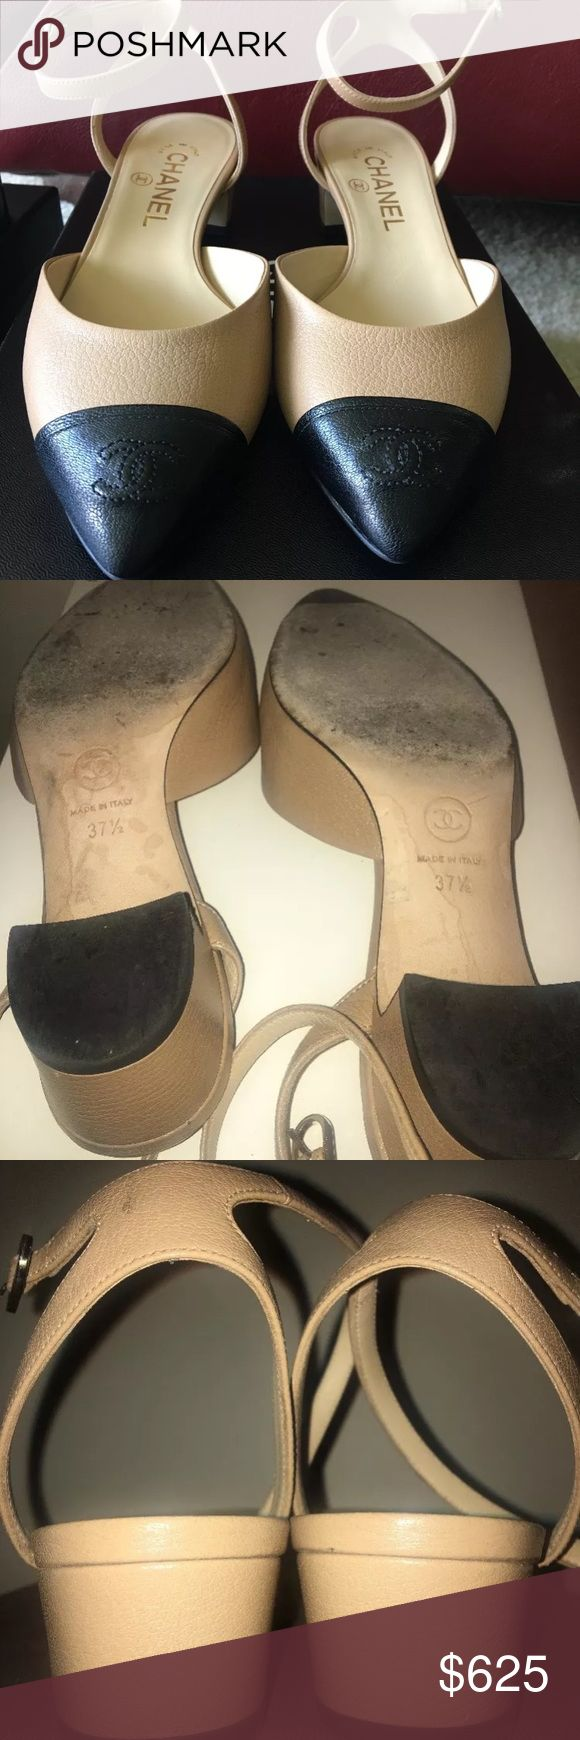 Chanel flats authentic shoe Monday sale 🌟 Like new Chanel flat goat skin original box and dust cover included.  35 MM HEEL 1.4 IN HEEL.   Price is firm.   Beige/ black kid pointy city with ankle strap.  Retails now in Chanel boutique for $825.   Make offer looking to sell by Saturday CHANEL Shoes Flats & Loafers